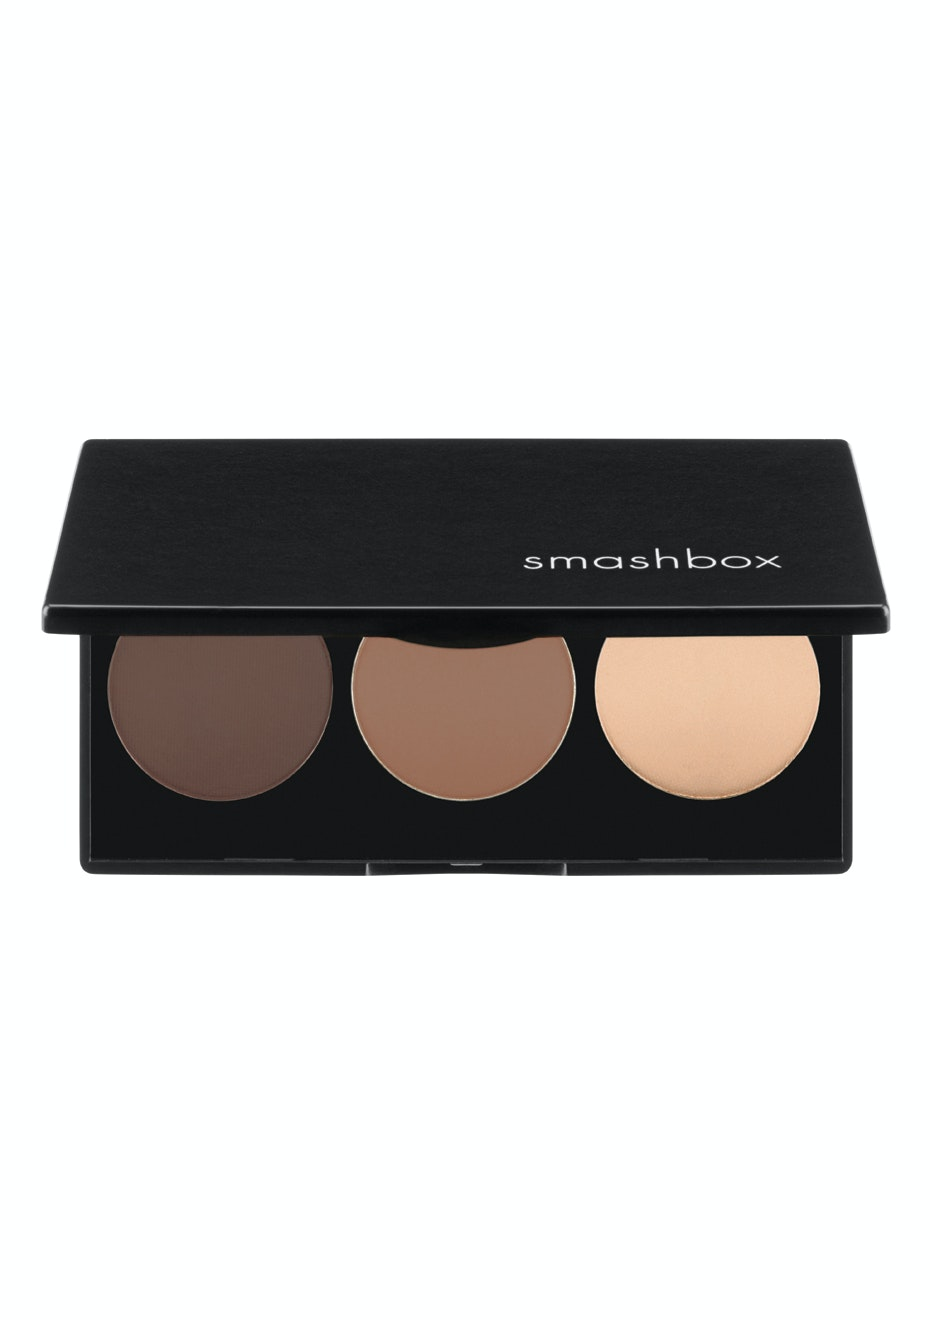 Smashbox - Step-by-Step Contour Palette